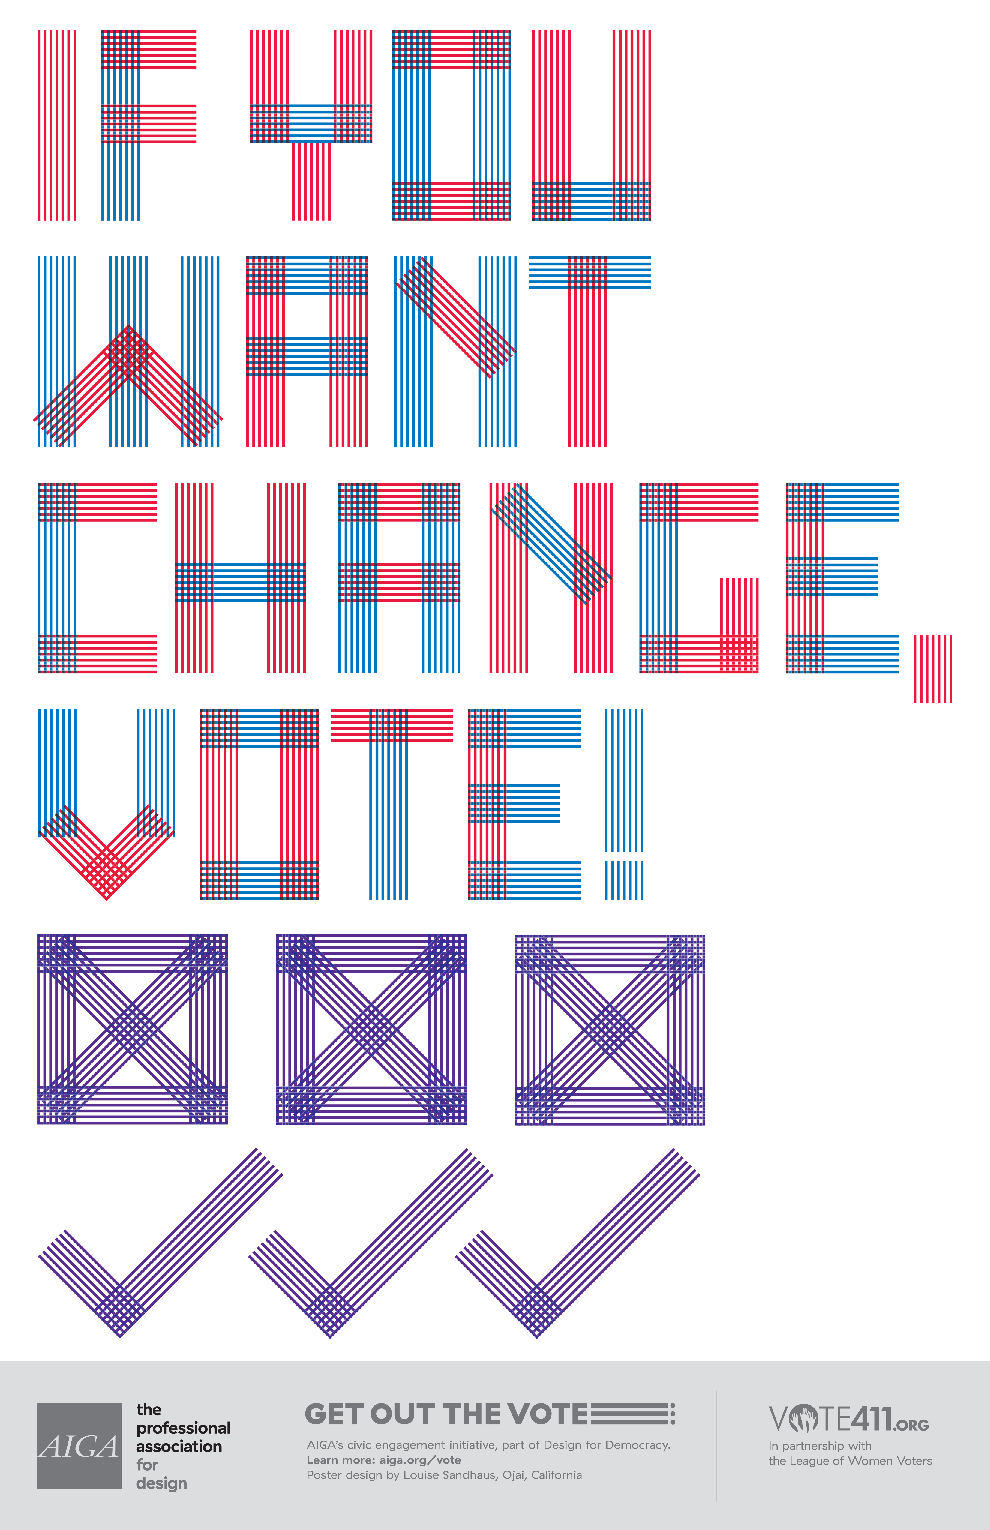 aiga-get-out-the-vote-google-poster4.png